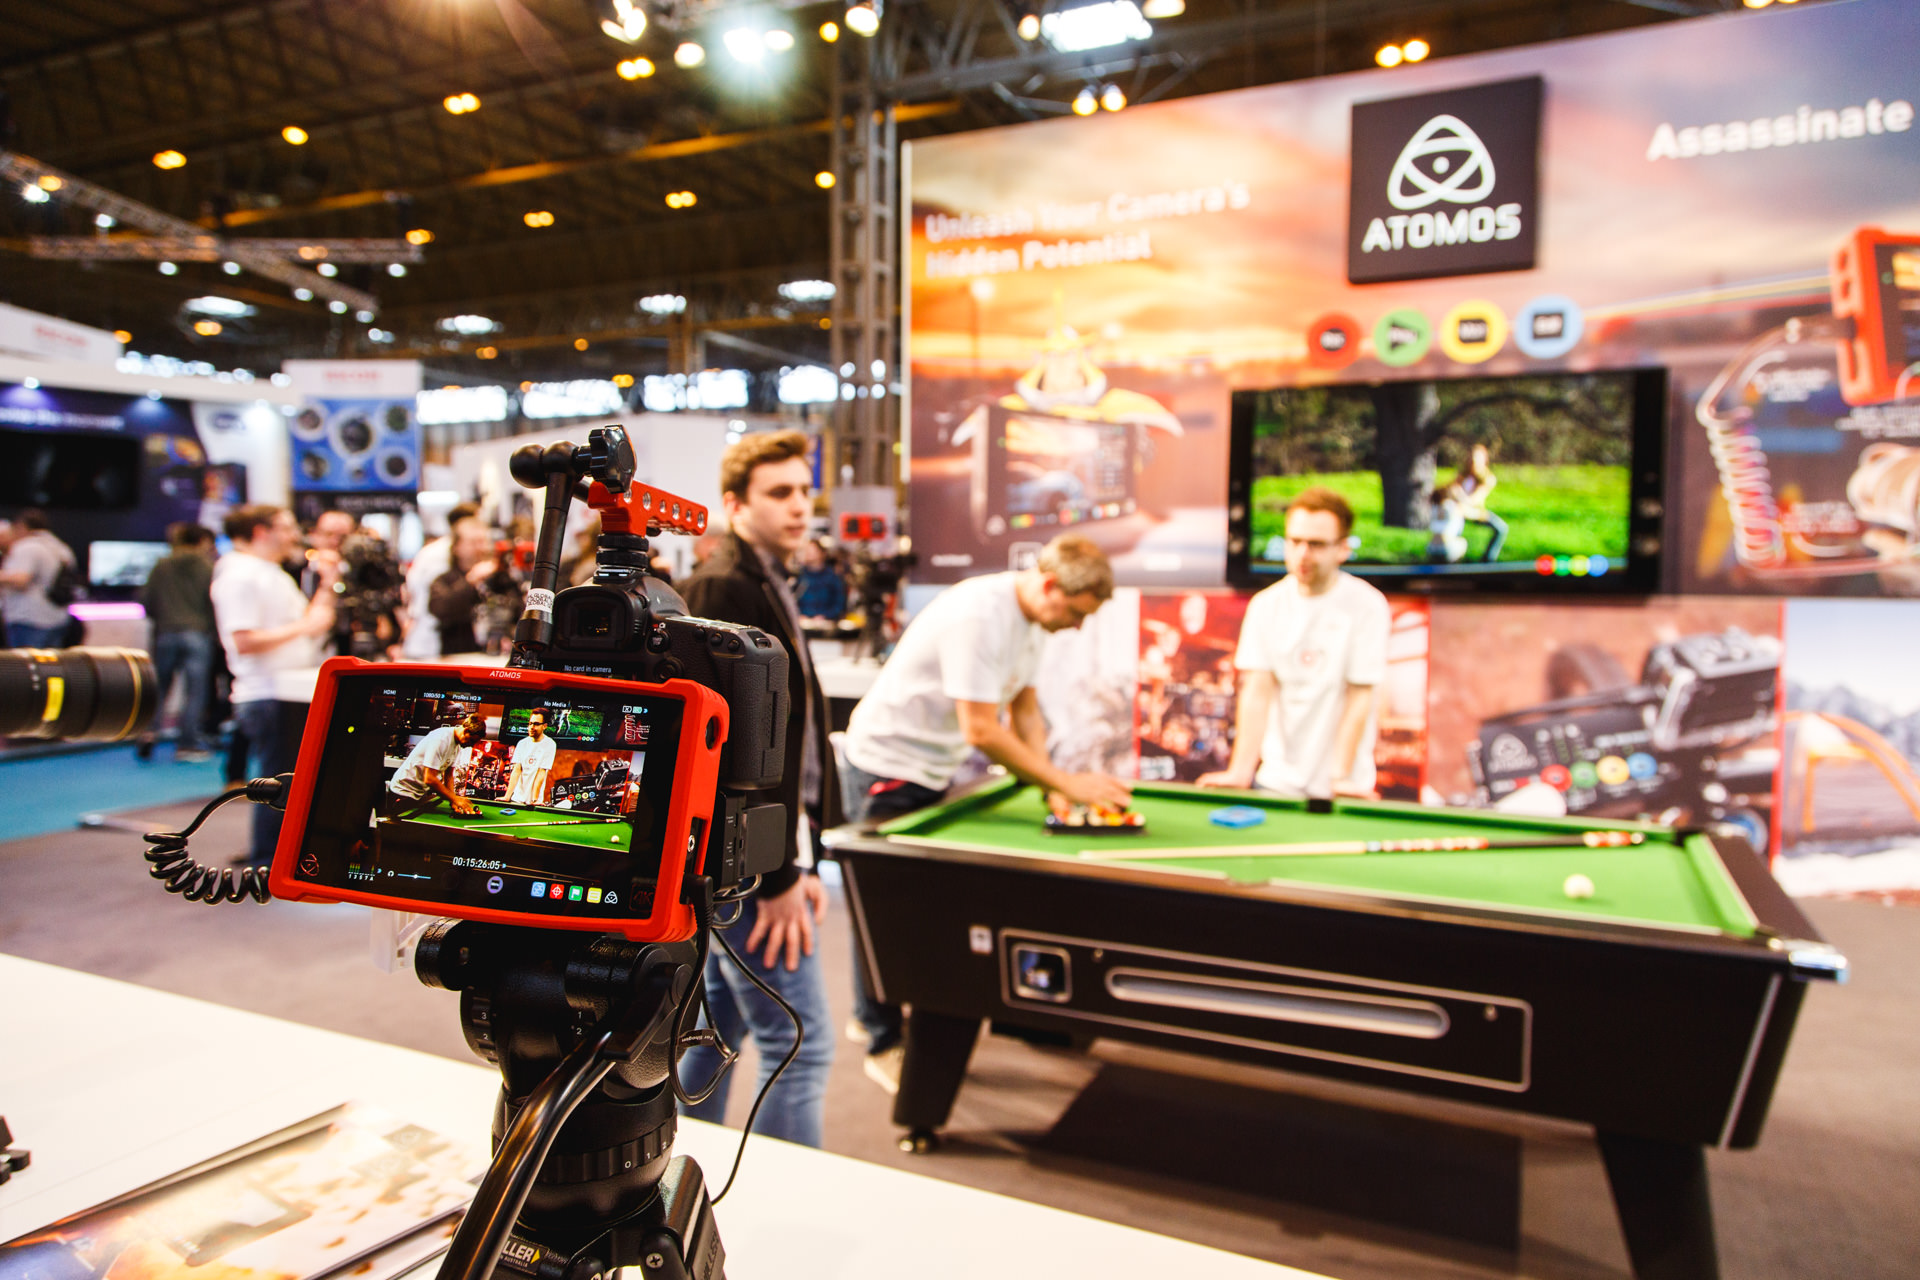 If I was shooting a lot of video then I would be investing in  Atomos products. Their combined monitor and recording-storage devices are quality, used by many a professional. Their stand setup surrounded a pool table, giving attendees an opportunity to see how the monitors looked when mounted to camera equipment.